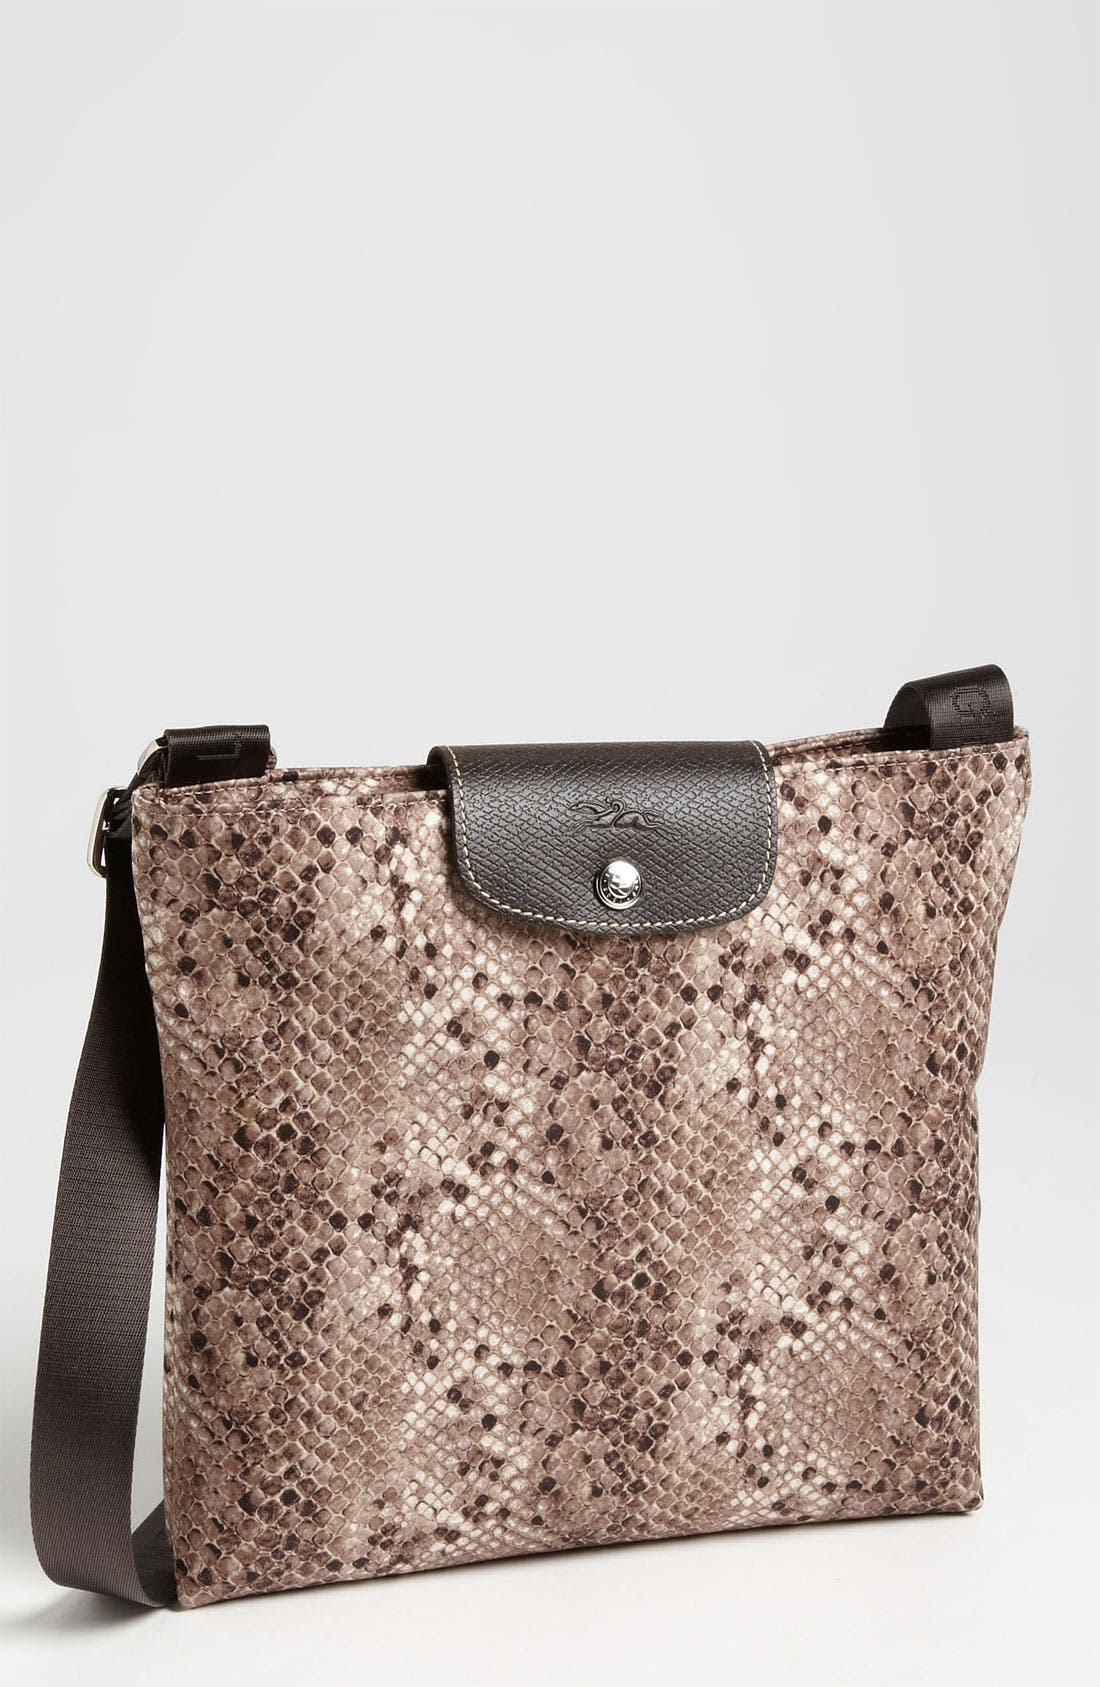 Main Image - Longchamp 'Le Pliage' Python Print Crossbody Bag